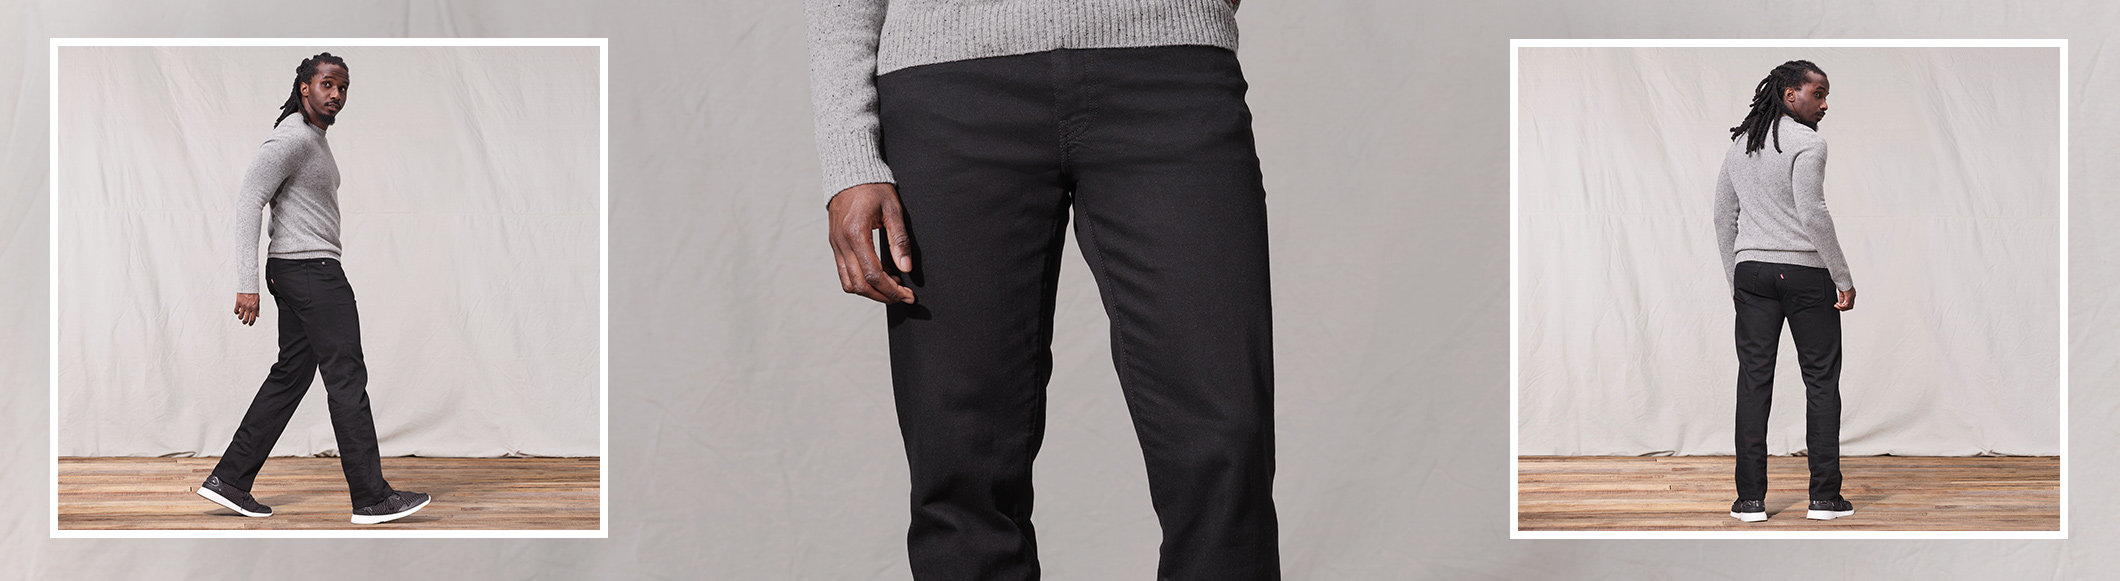 541™ Athletic Jeans